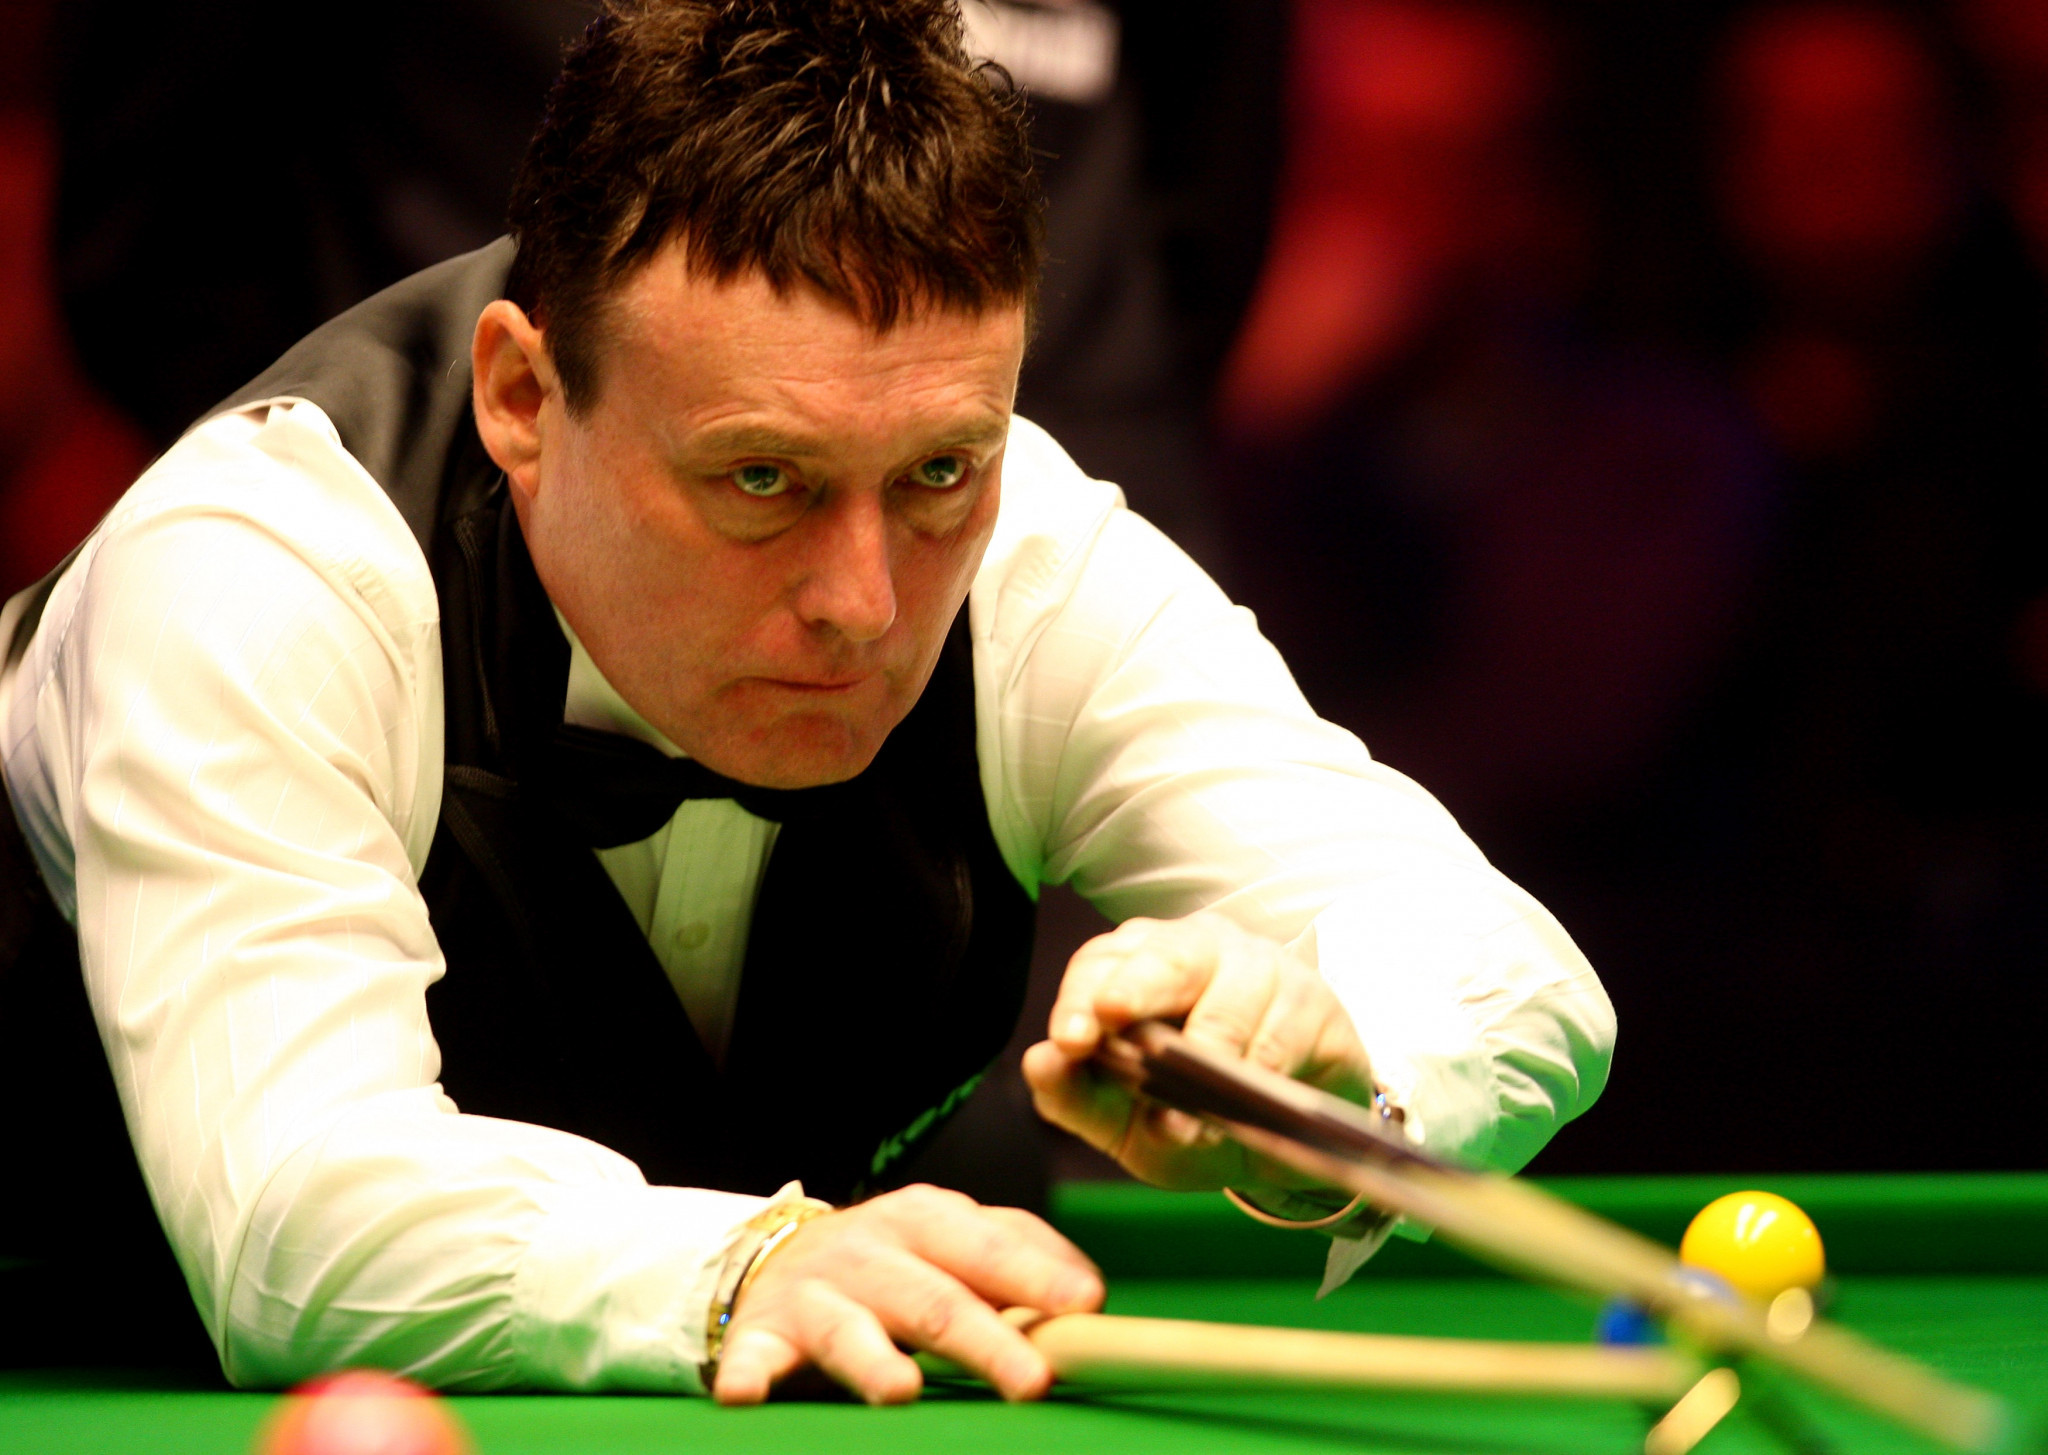 Jimmy White will be among legendary players taking part in the new World Professional Seniors Championship at the Crucible Theatre, Sheffield in August ©Getty Images